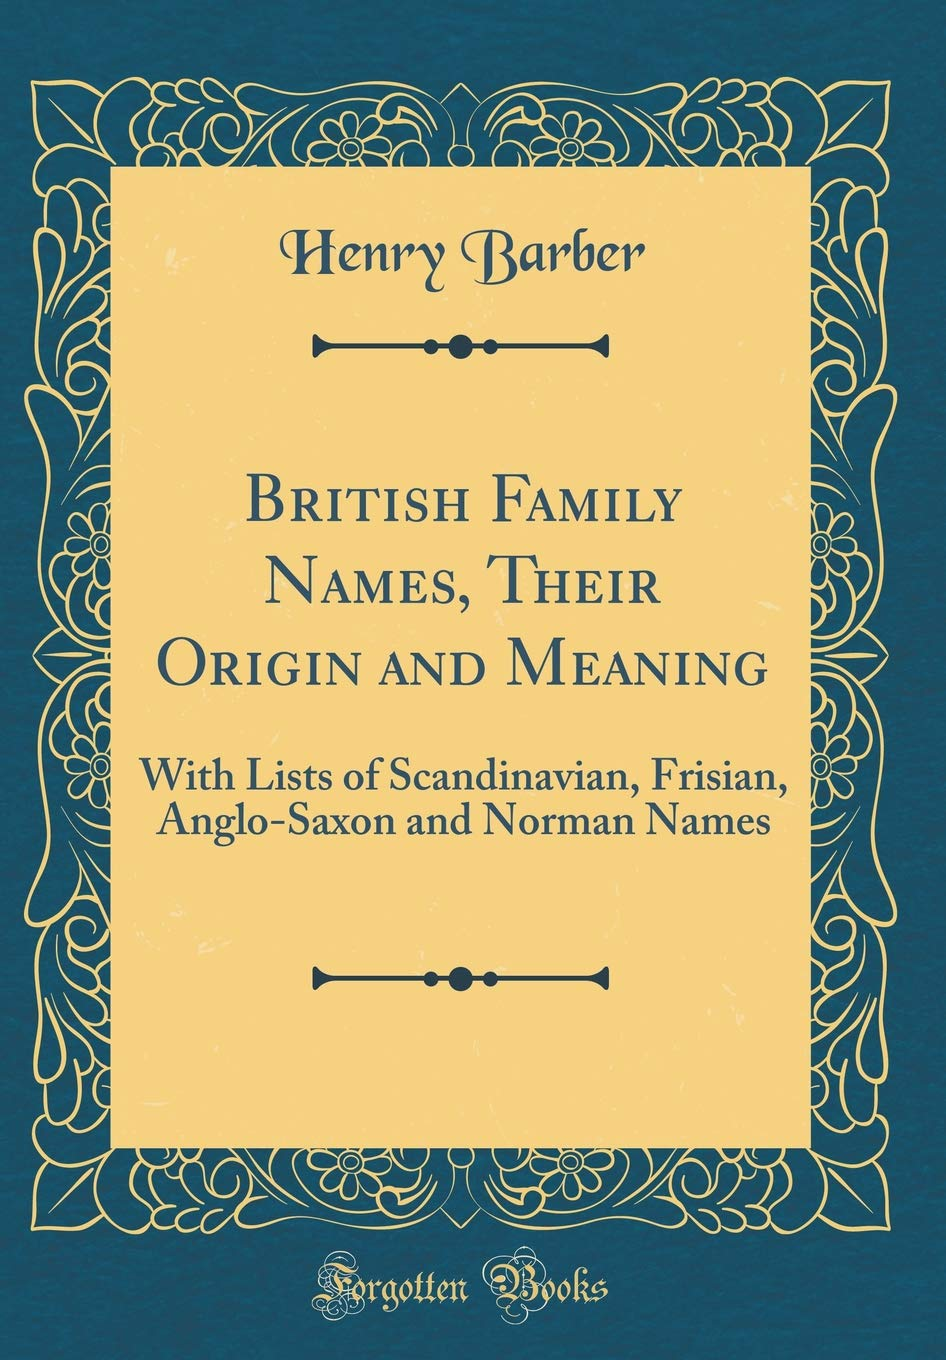 British Family Names, Their Origin and Meaning: With Lists of